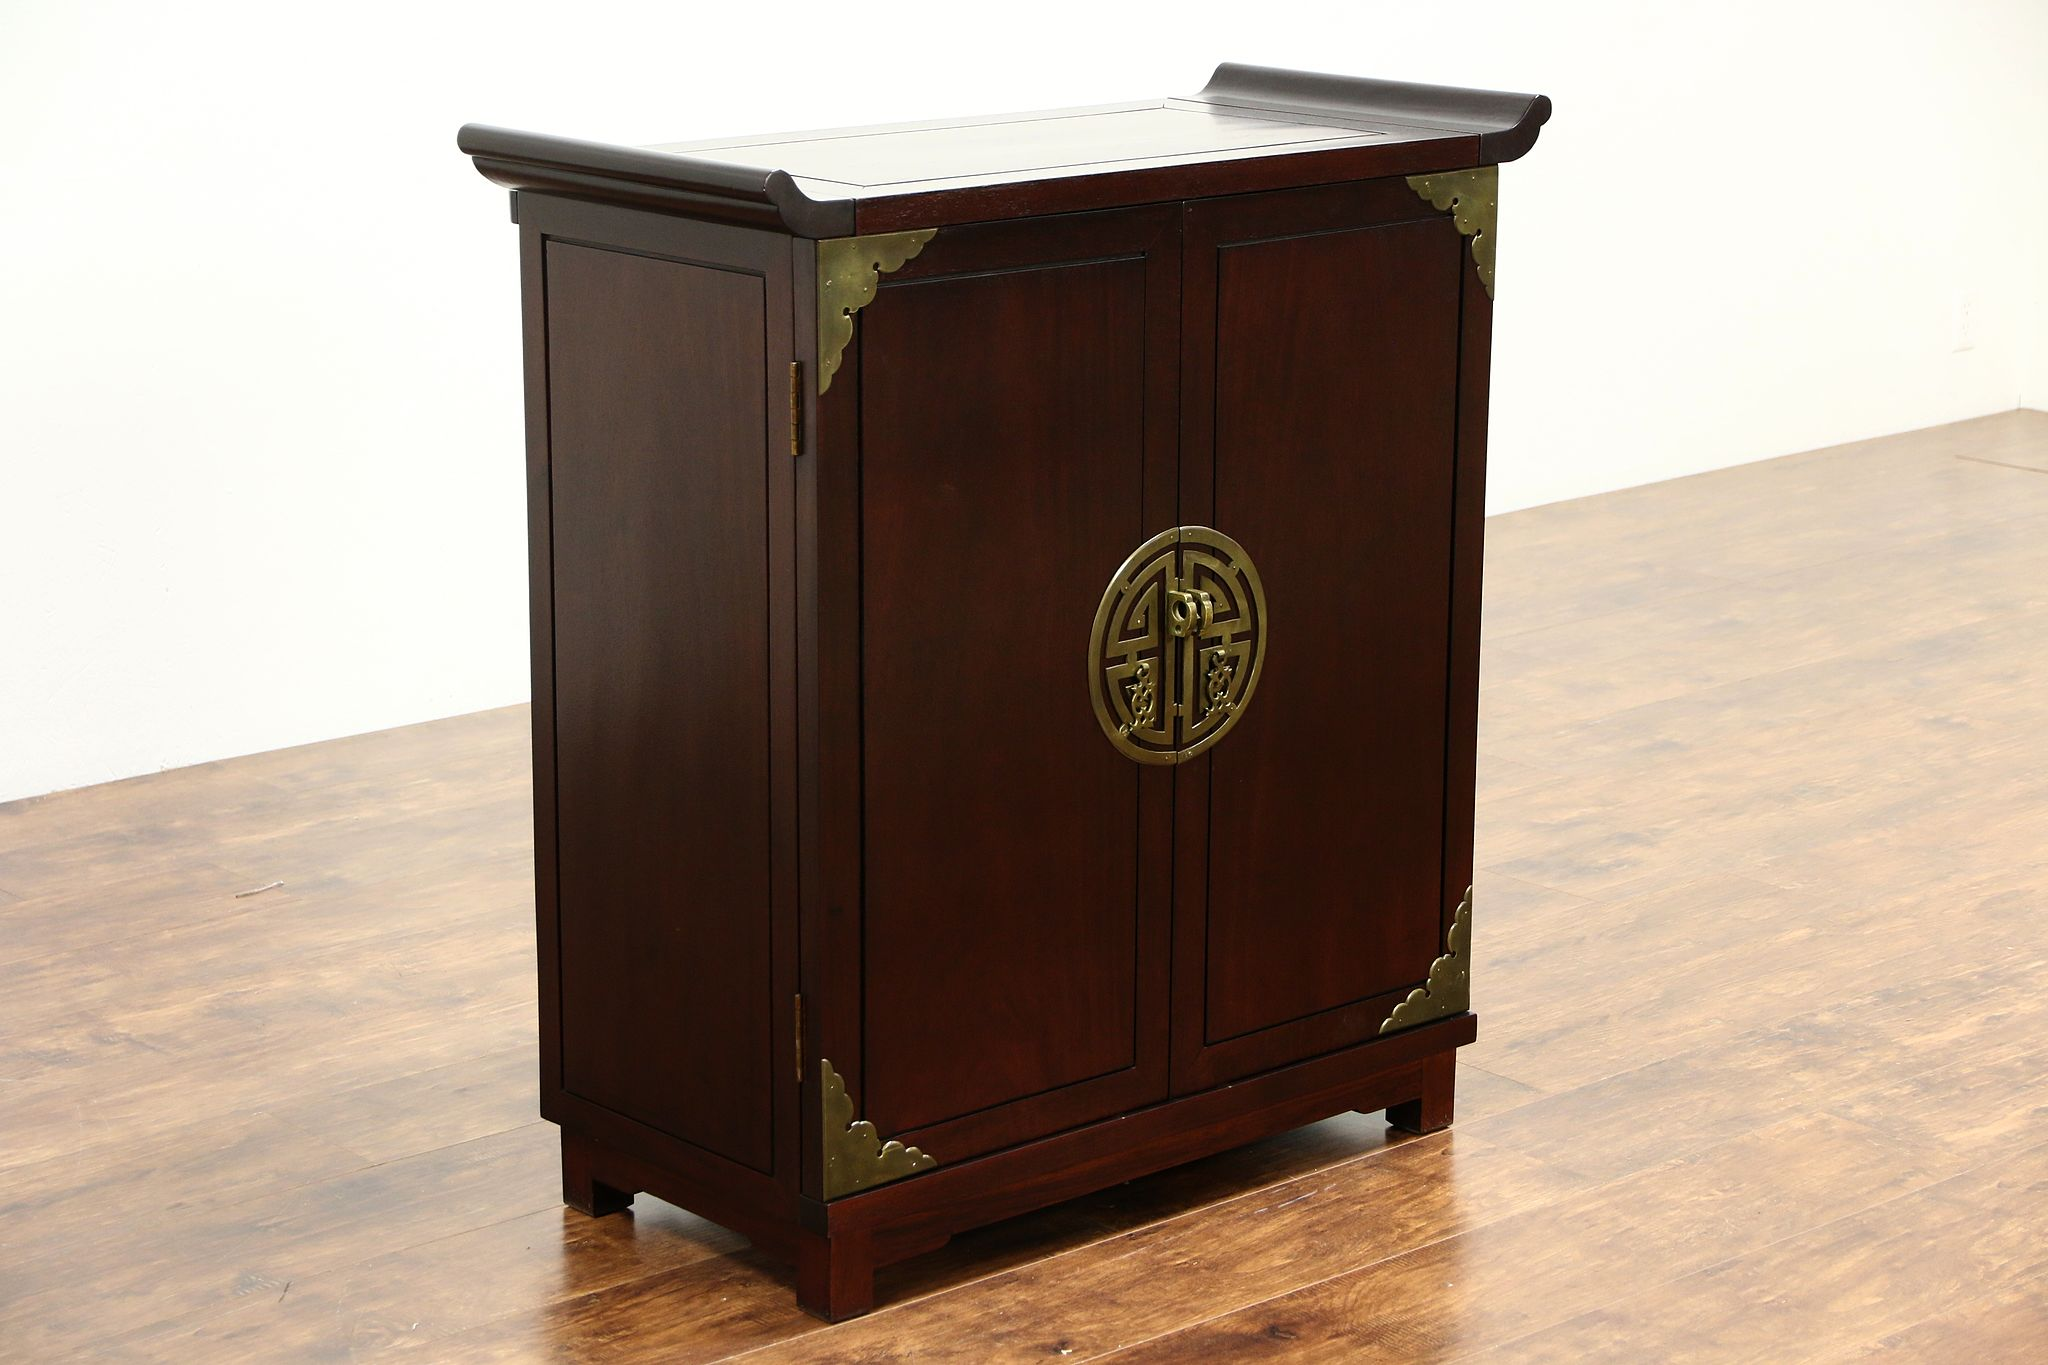 Beau Chinese Vintage Hand Carved Mahogany Bar Or Liquor Cabinet ...